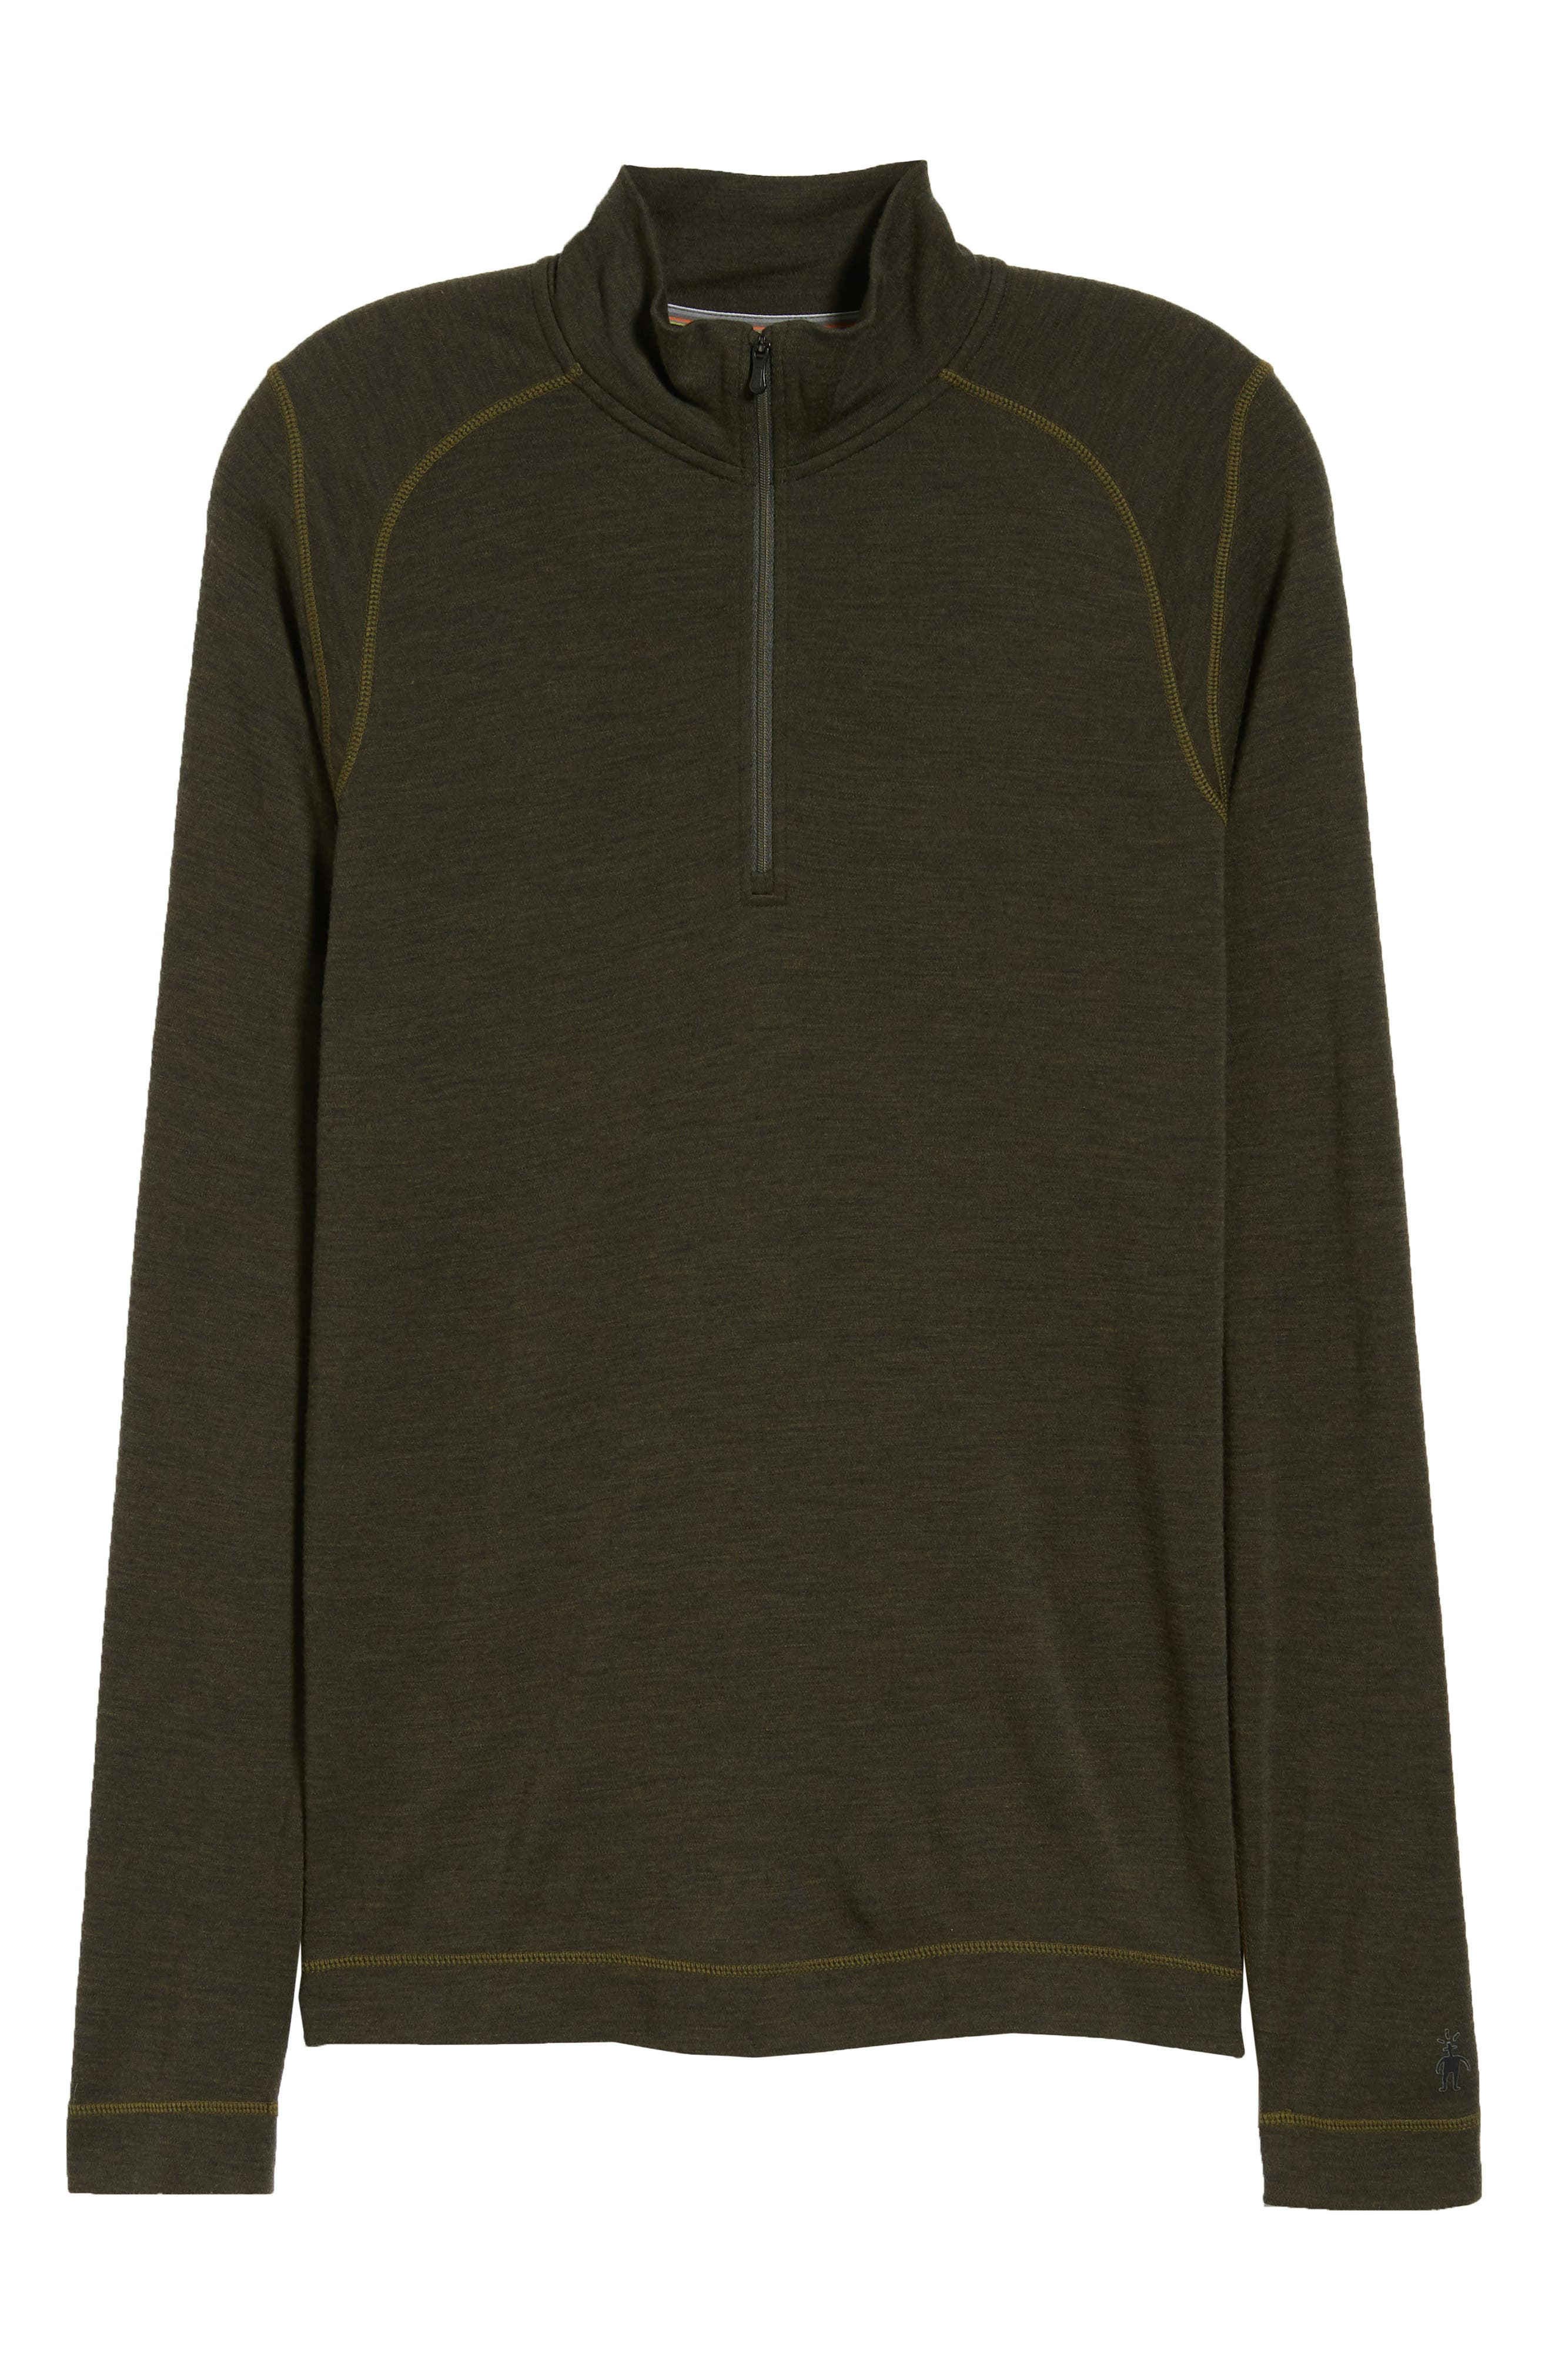 Merino 250 Base Layer Quarter Zip Pullover,                             Alternate thumbnail 6, color,                             OLIVE HEATHER